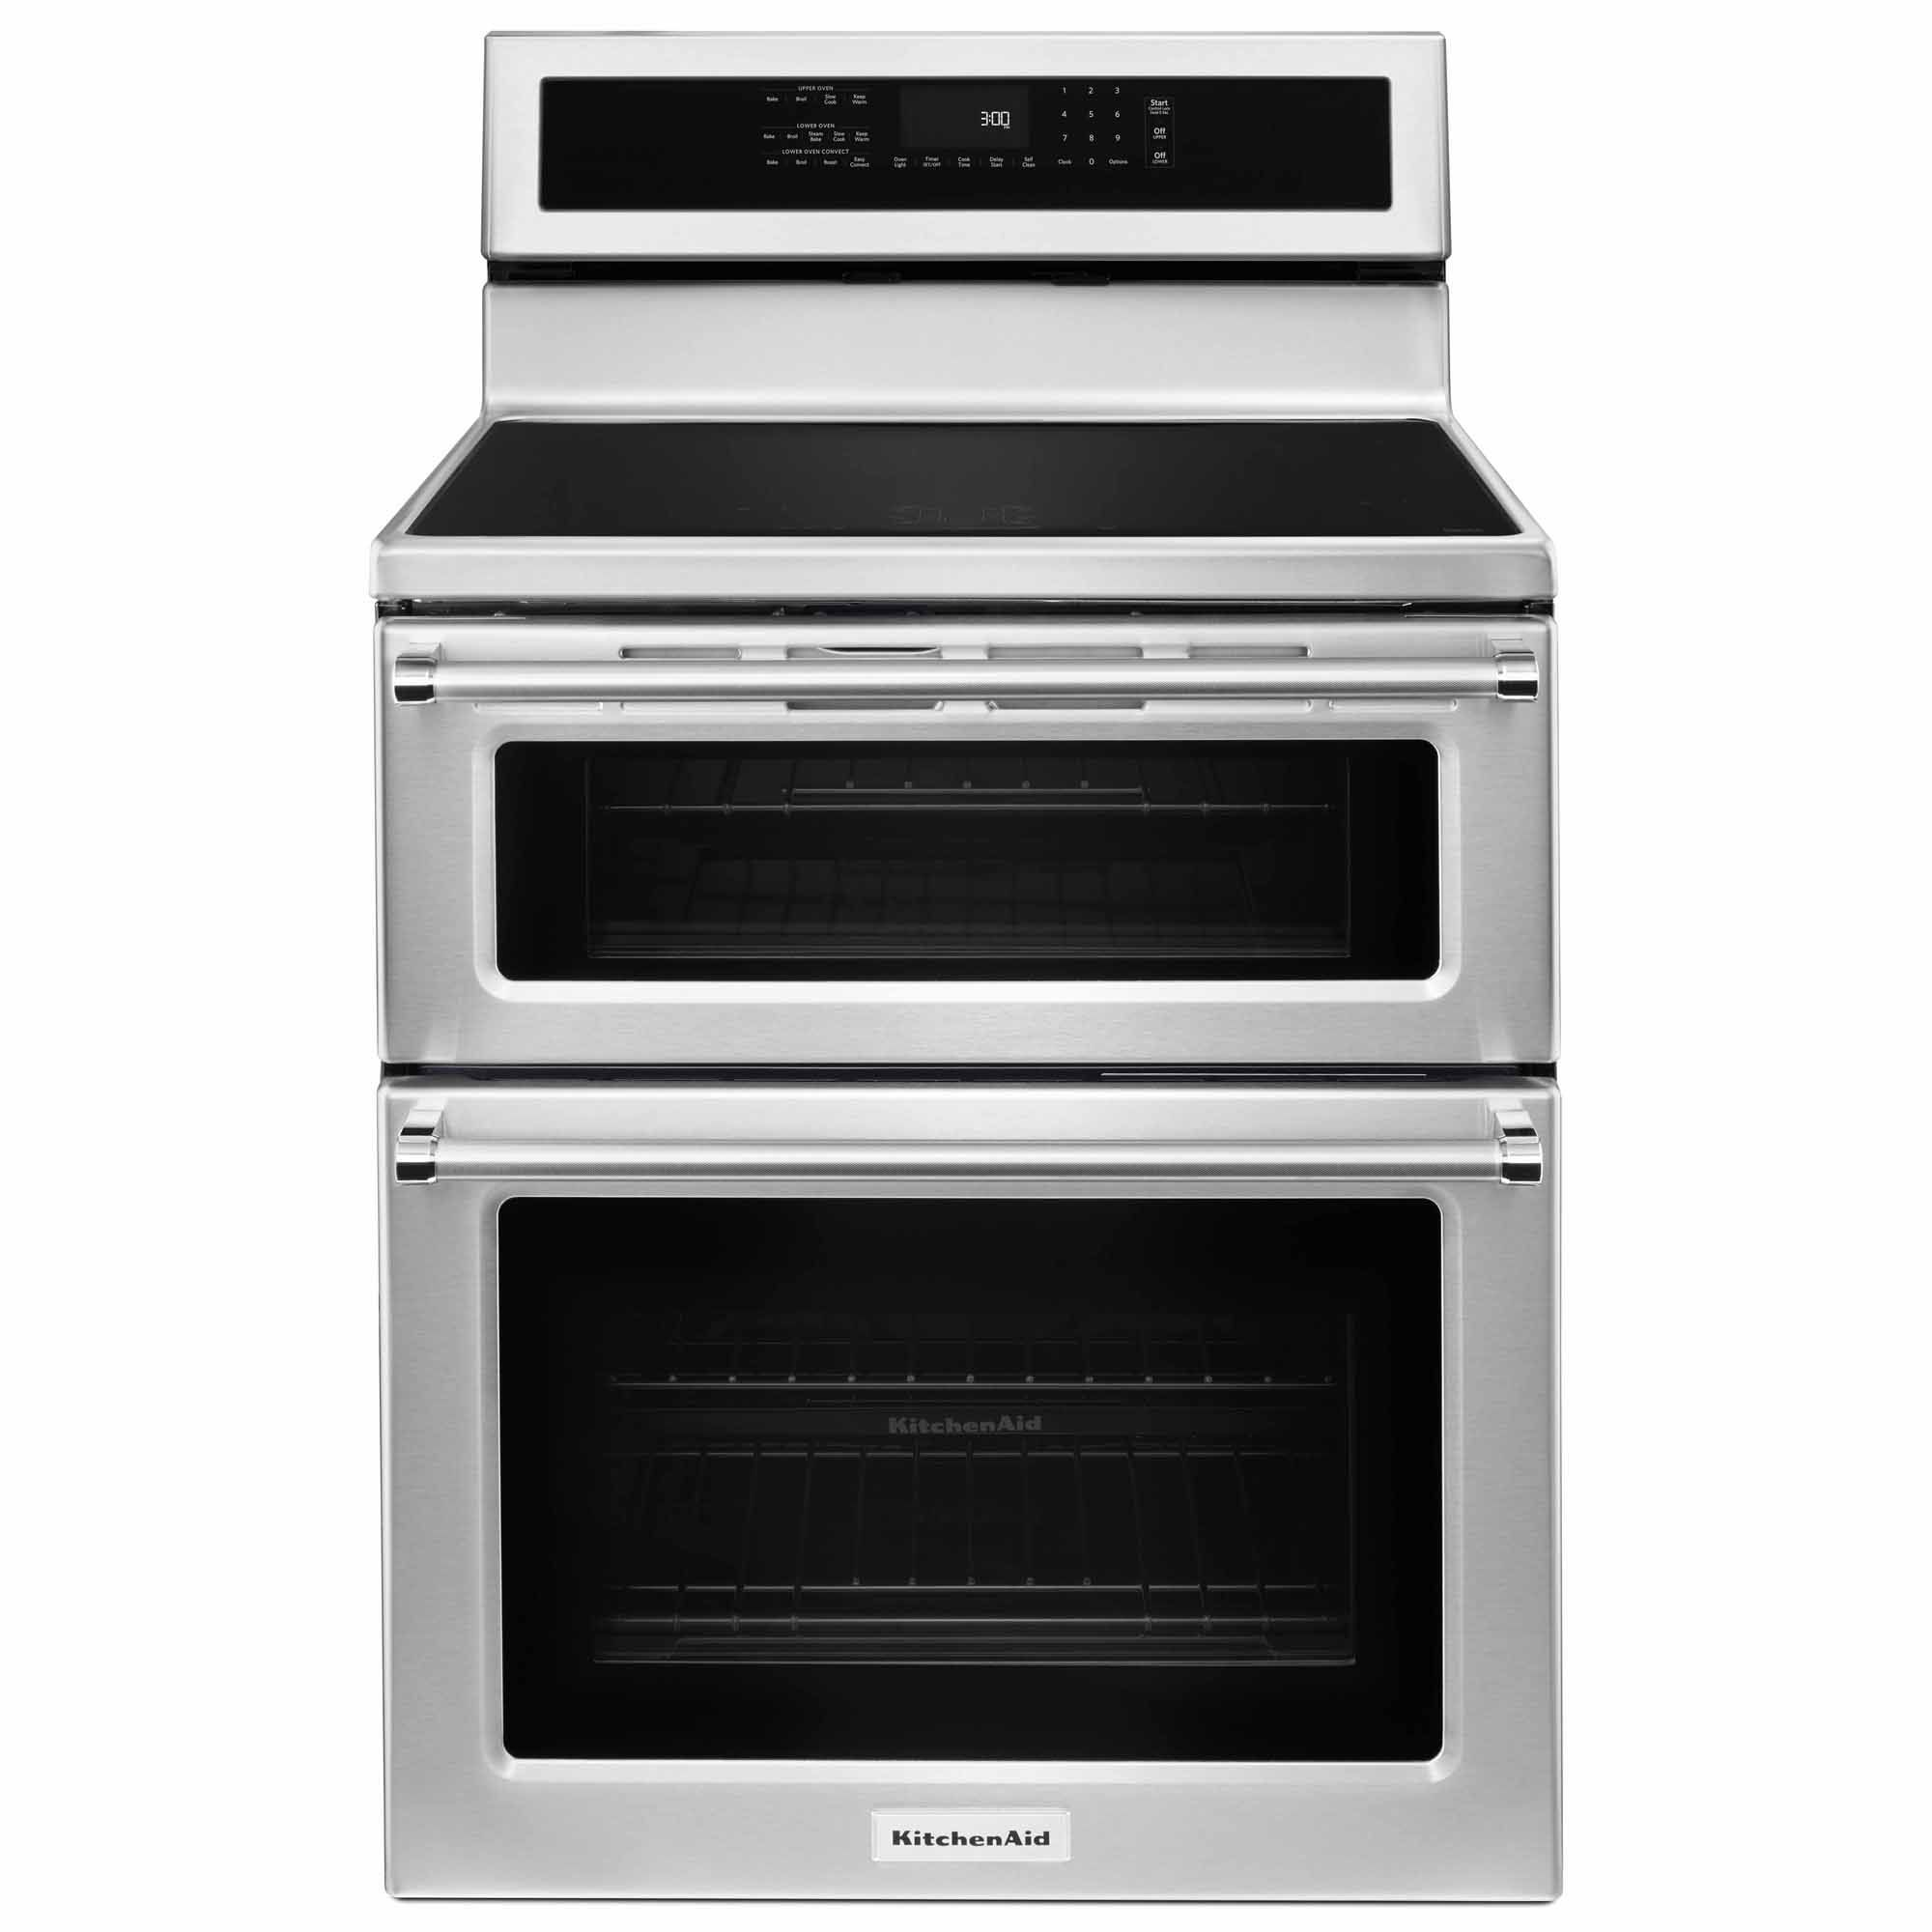 Found it absoutely must have double oven range double